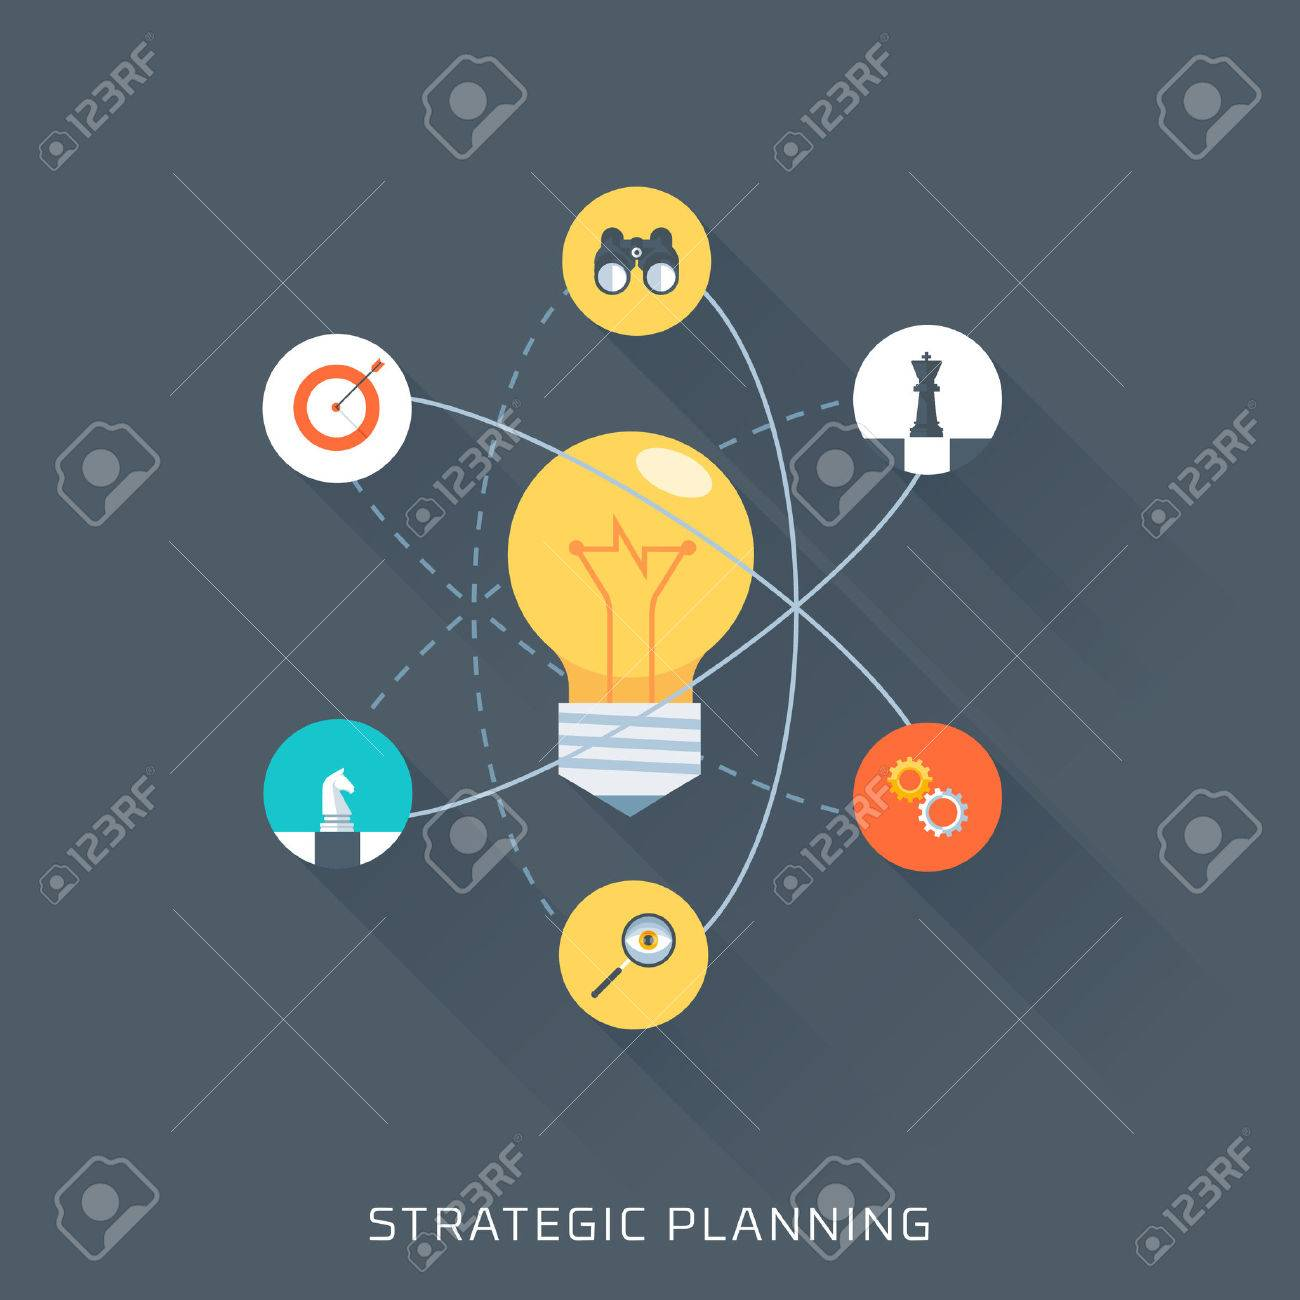 Strategic planning, flat style, colorful, vector icon set for info graphics, websites, mobile and print media. - 41709063